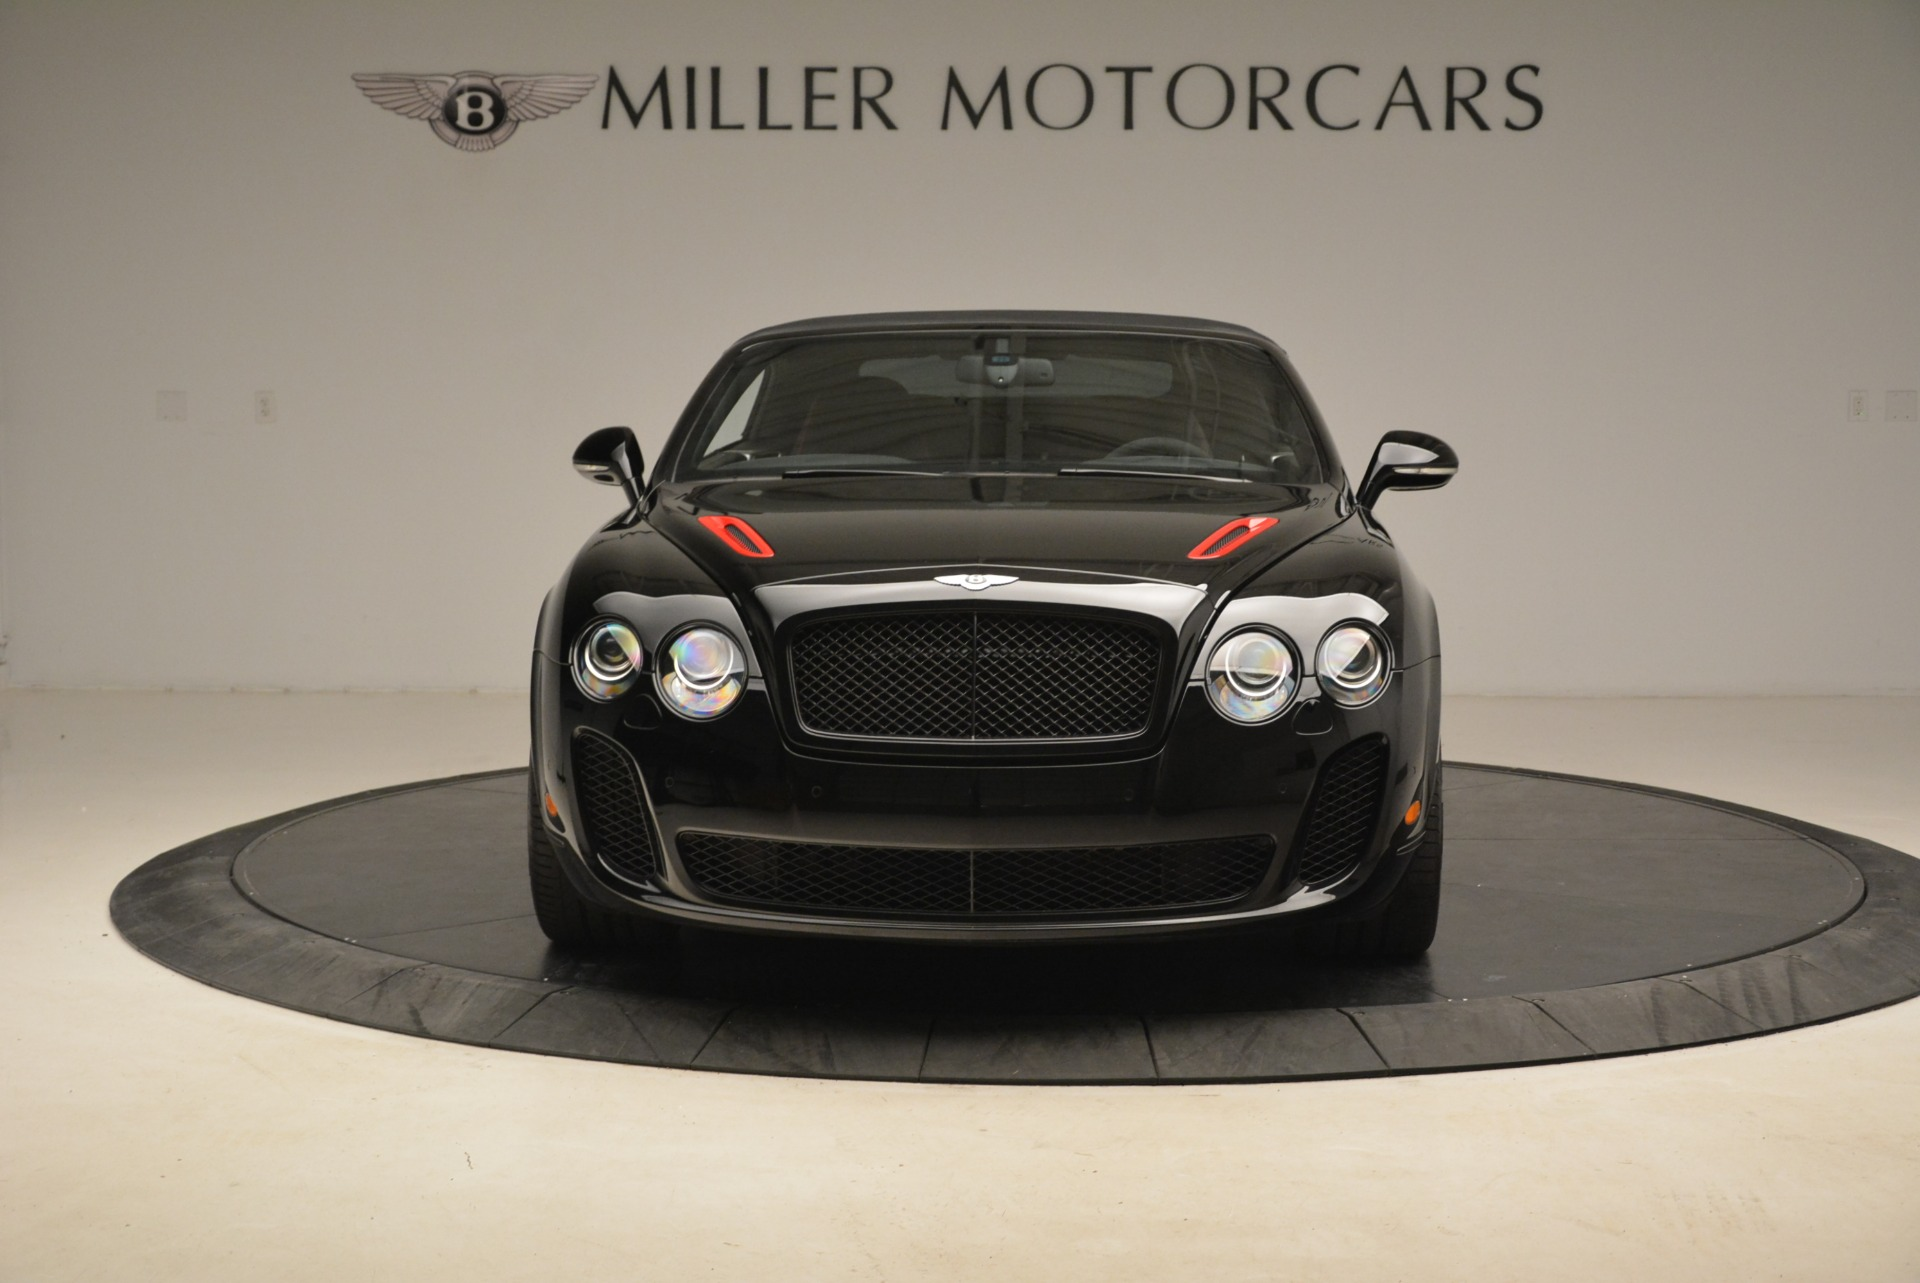 Used 2013 Bentley Continental GT Supersports Convertible ISR For Sale In Greenwich, CT 2151_p13